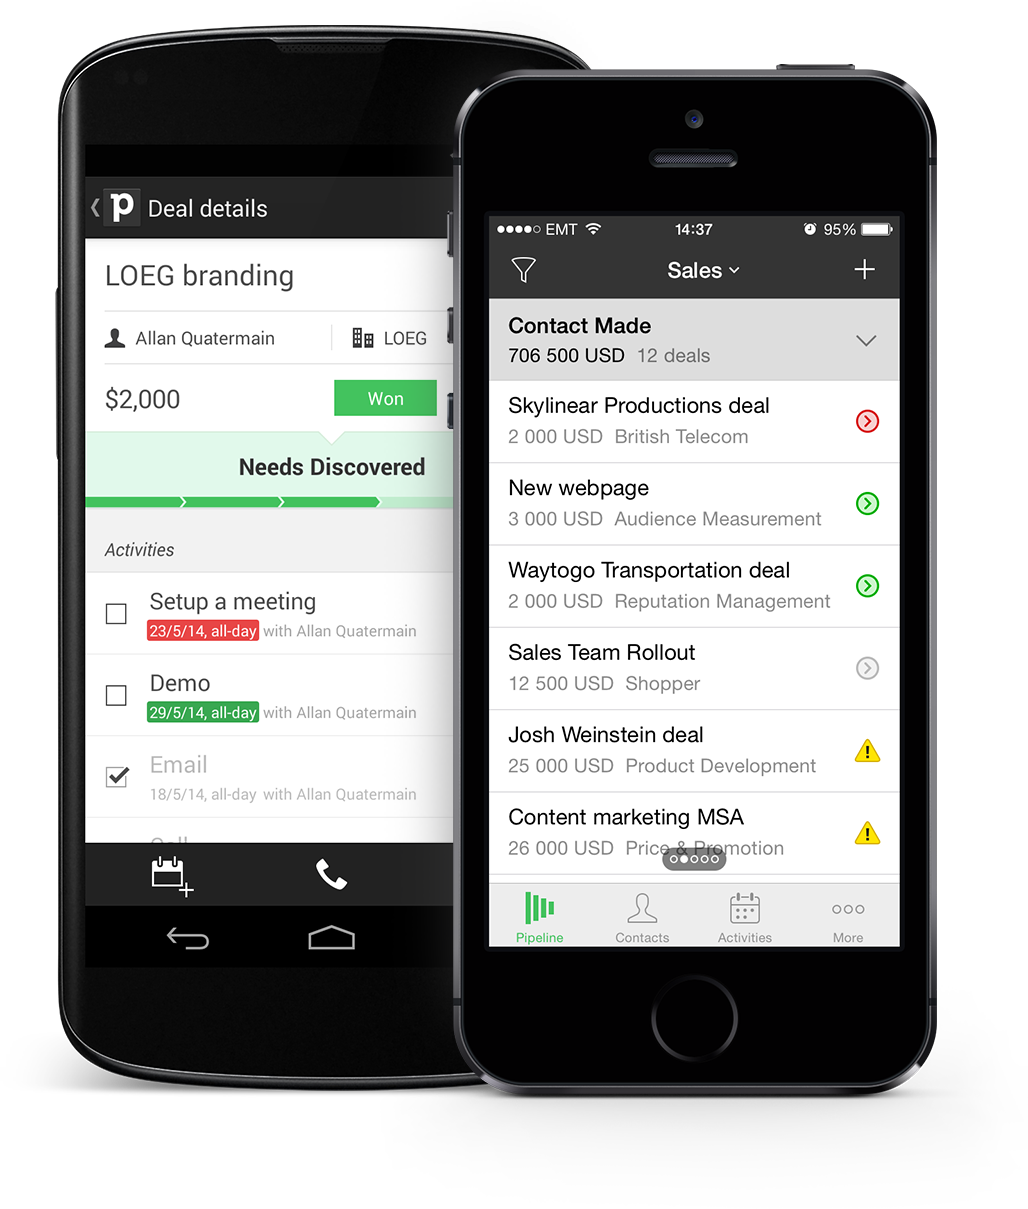 Pipedrive has full support for mobile apps- take your leads and contacts database with you, and update it on-the-go.